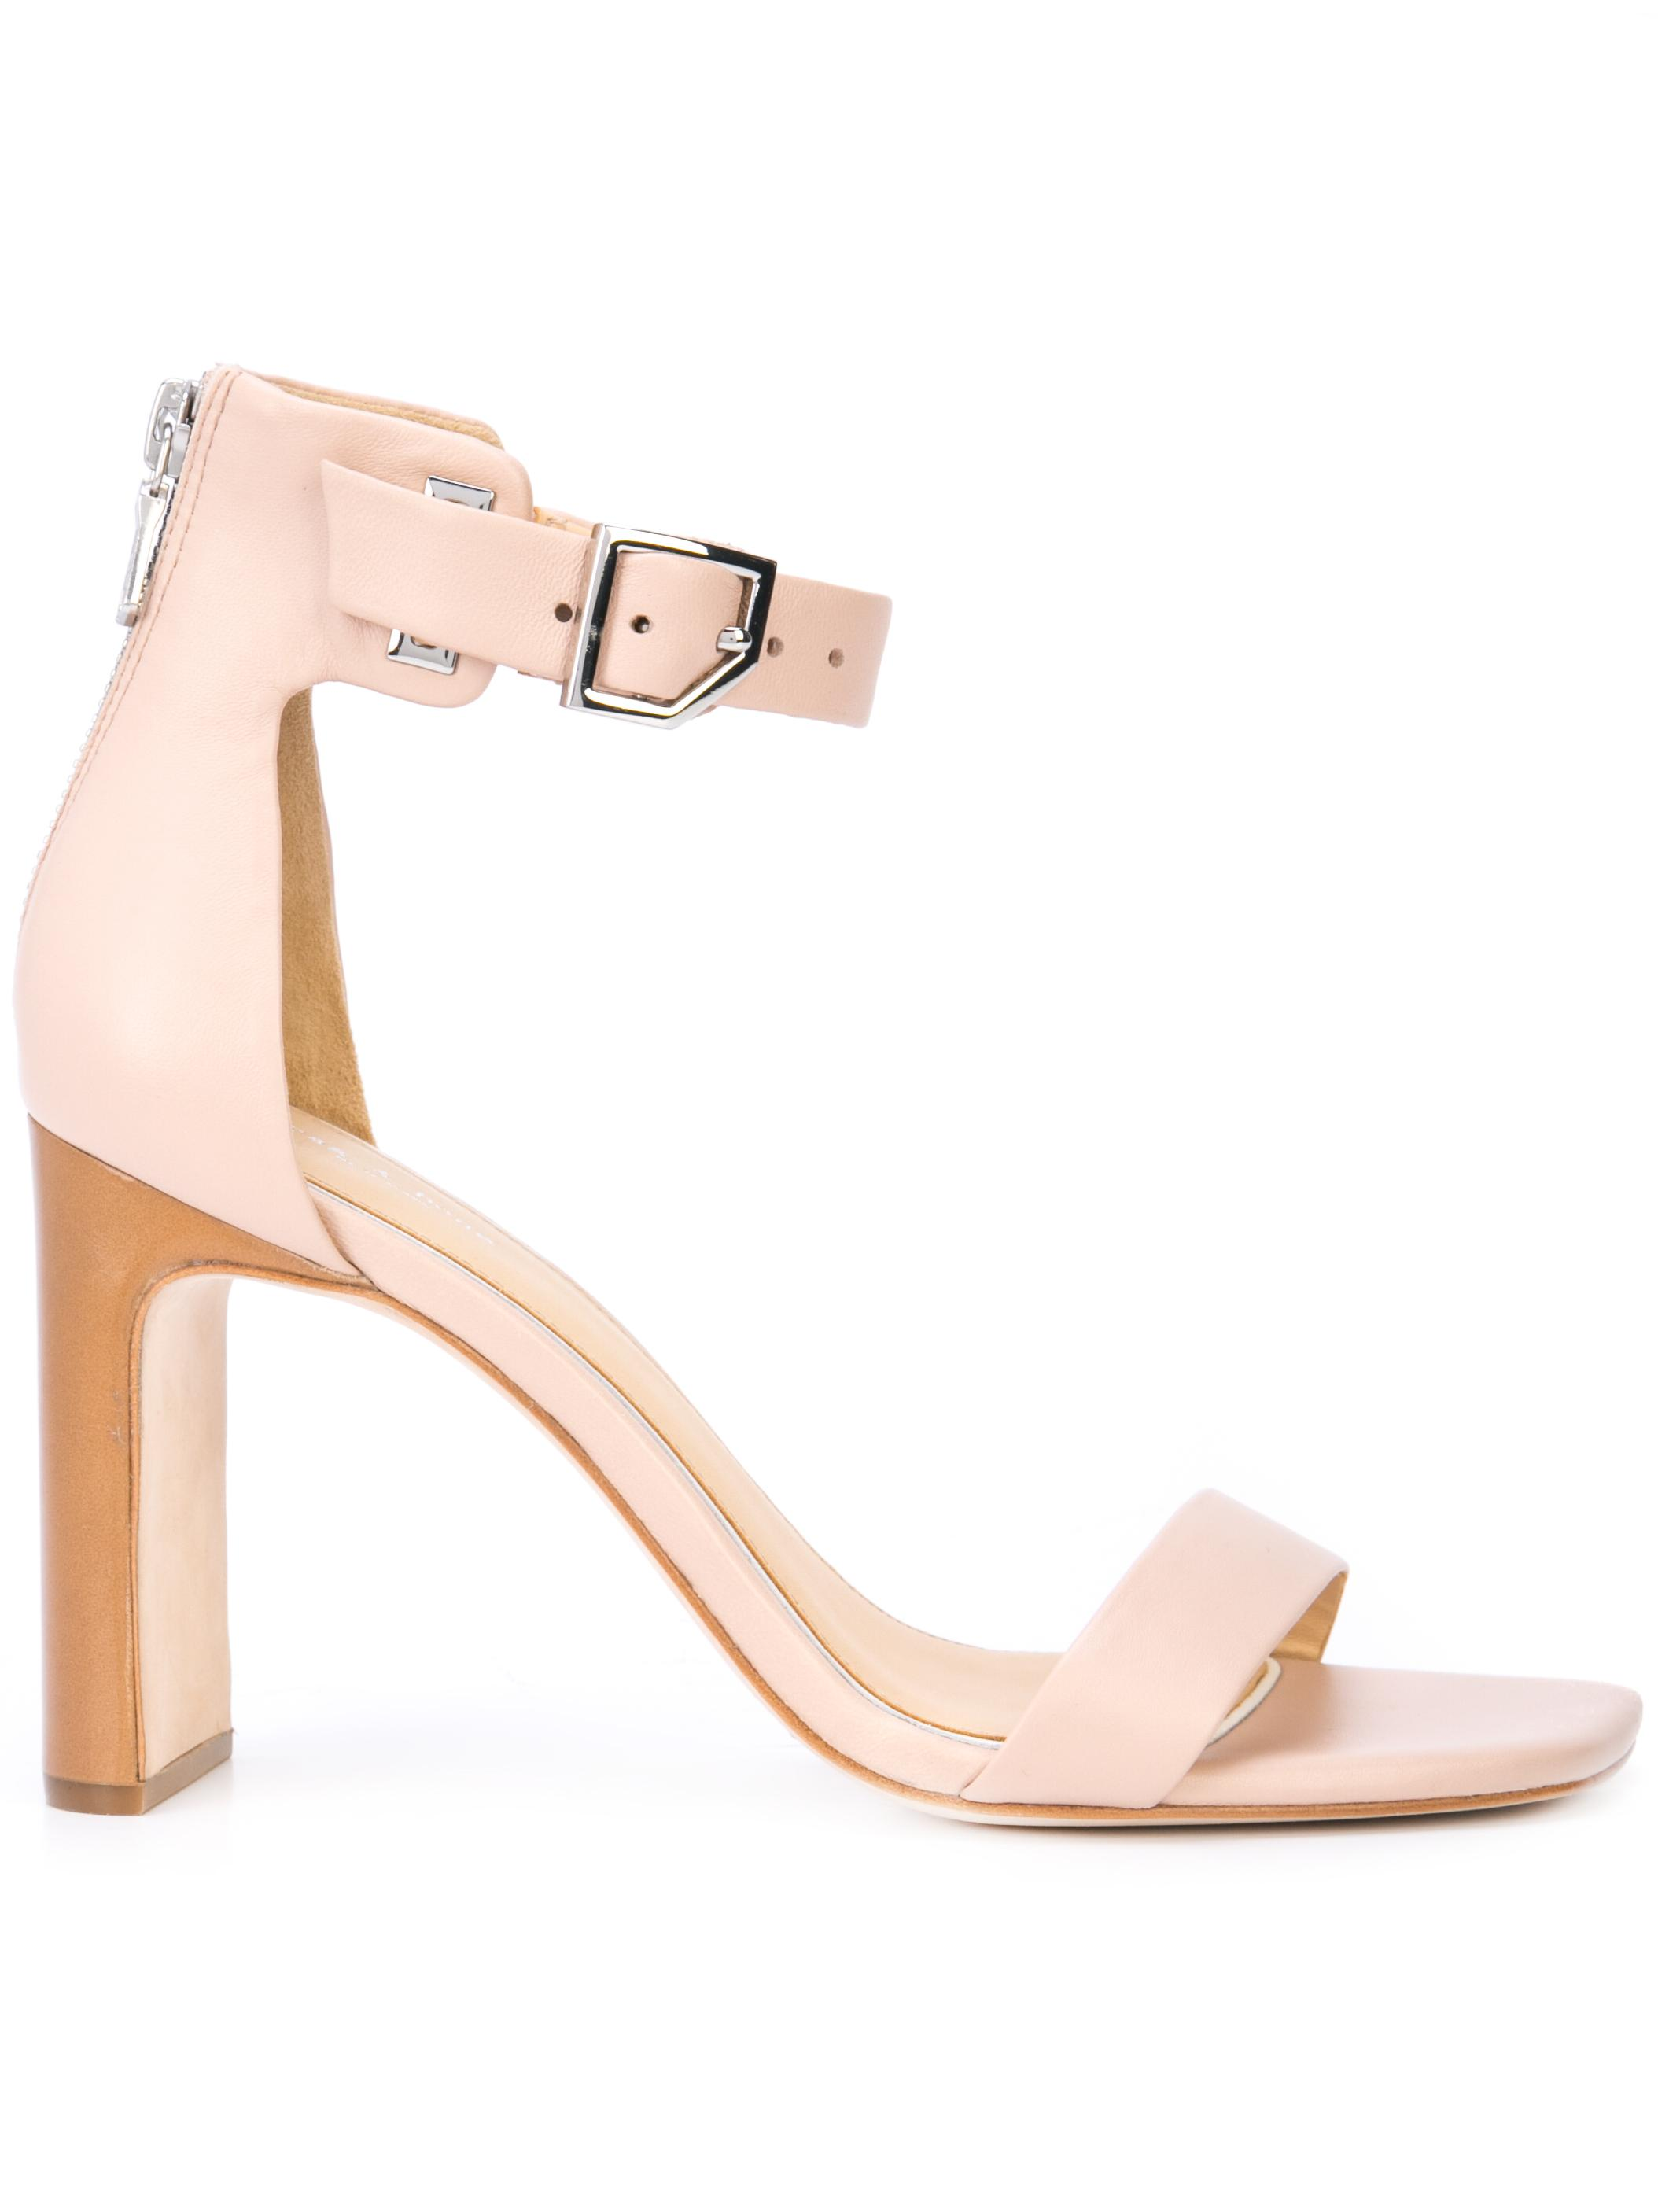 ELLIS HiHl Sandal w/Zip Back